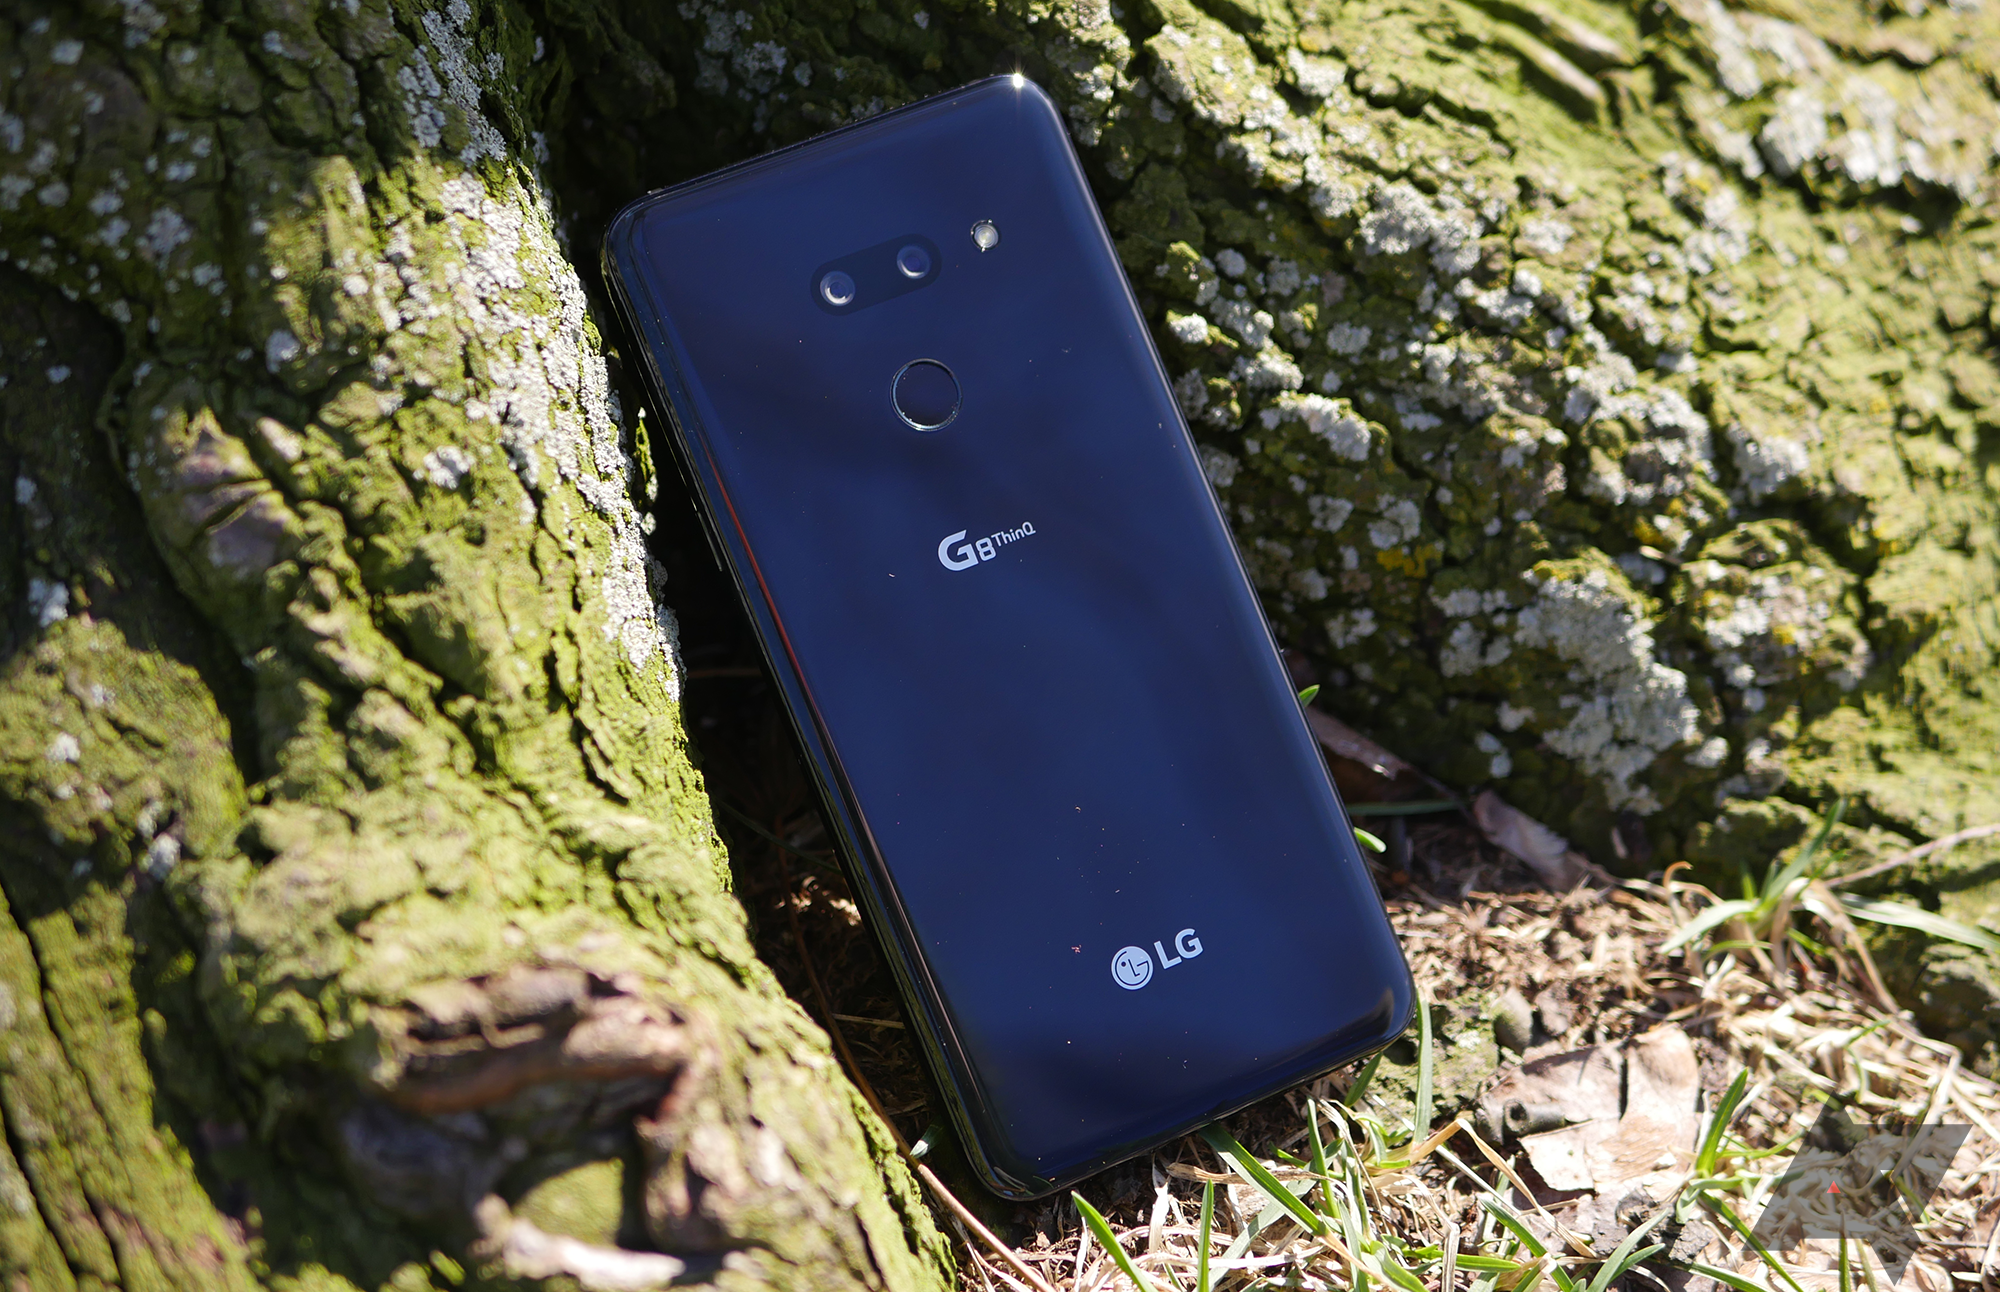 LG's smartphone business will be profitable by 2021, the CEO suggests